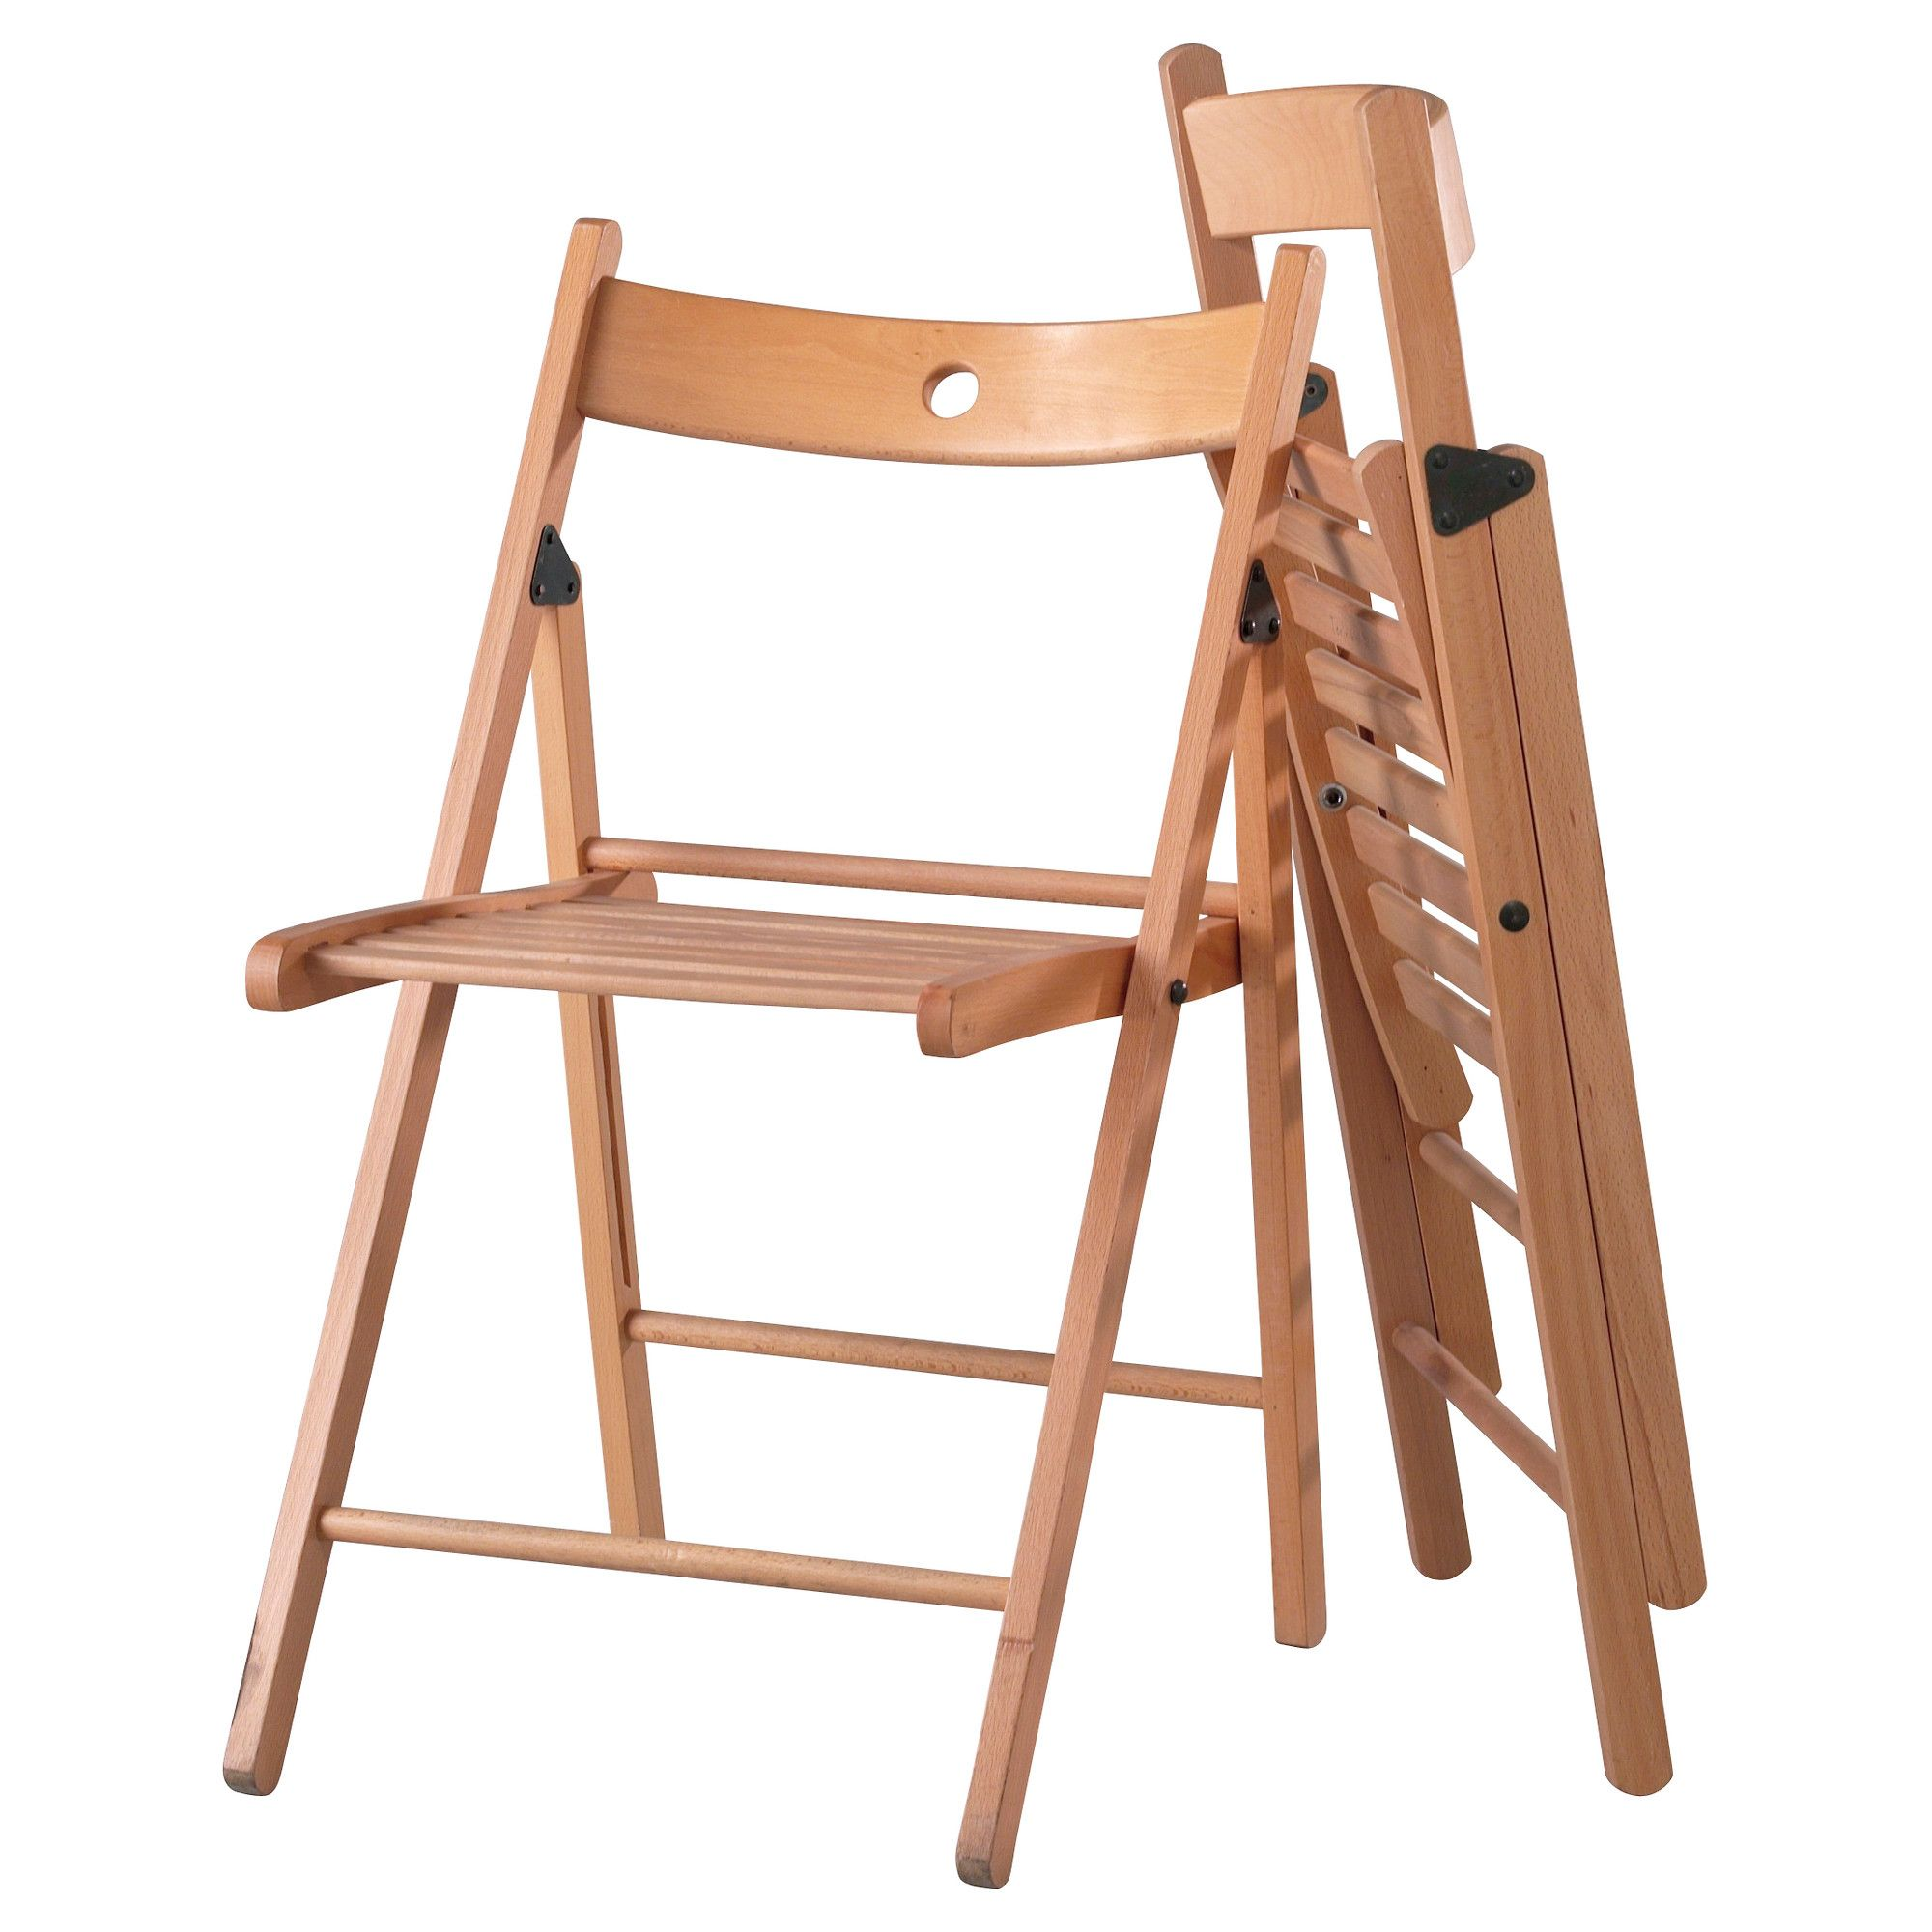 Folding Chair Ikea Sit Up Baby Bath Terje Beech Shoe Racks You Can Fold The So It Takes Less Space When Re Not Using